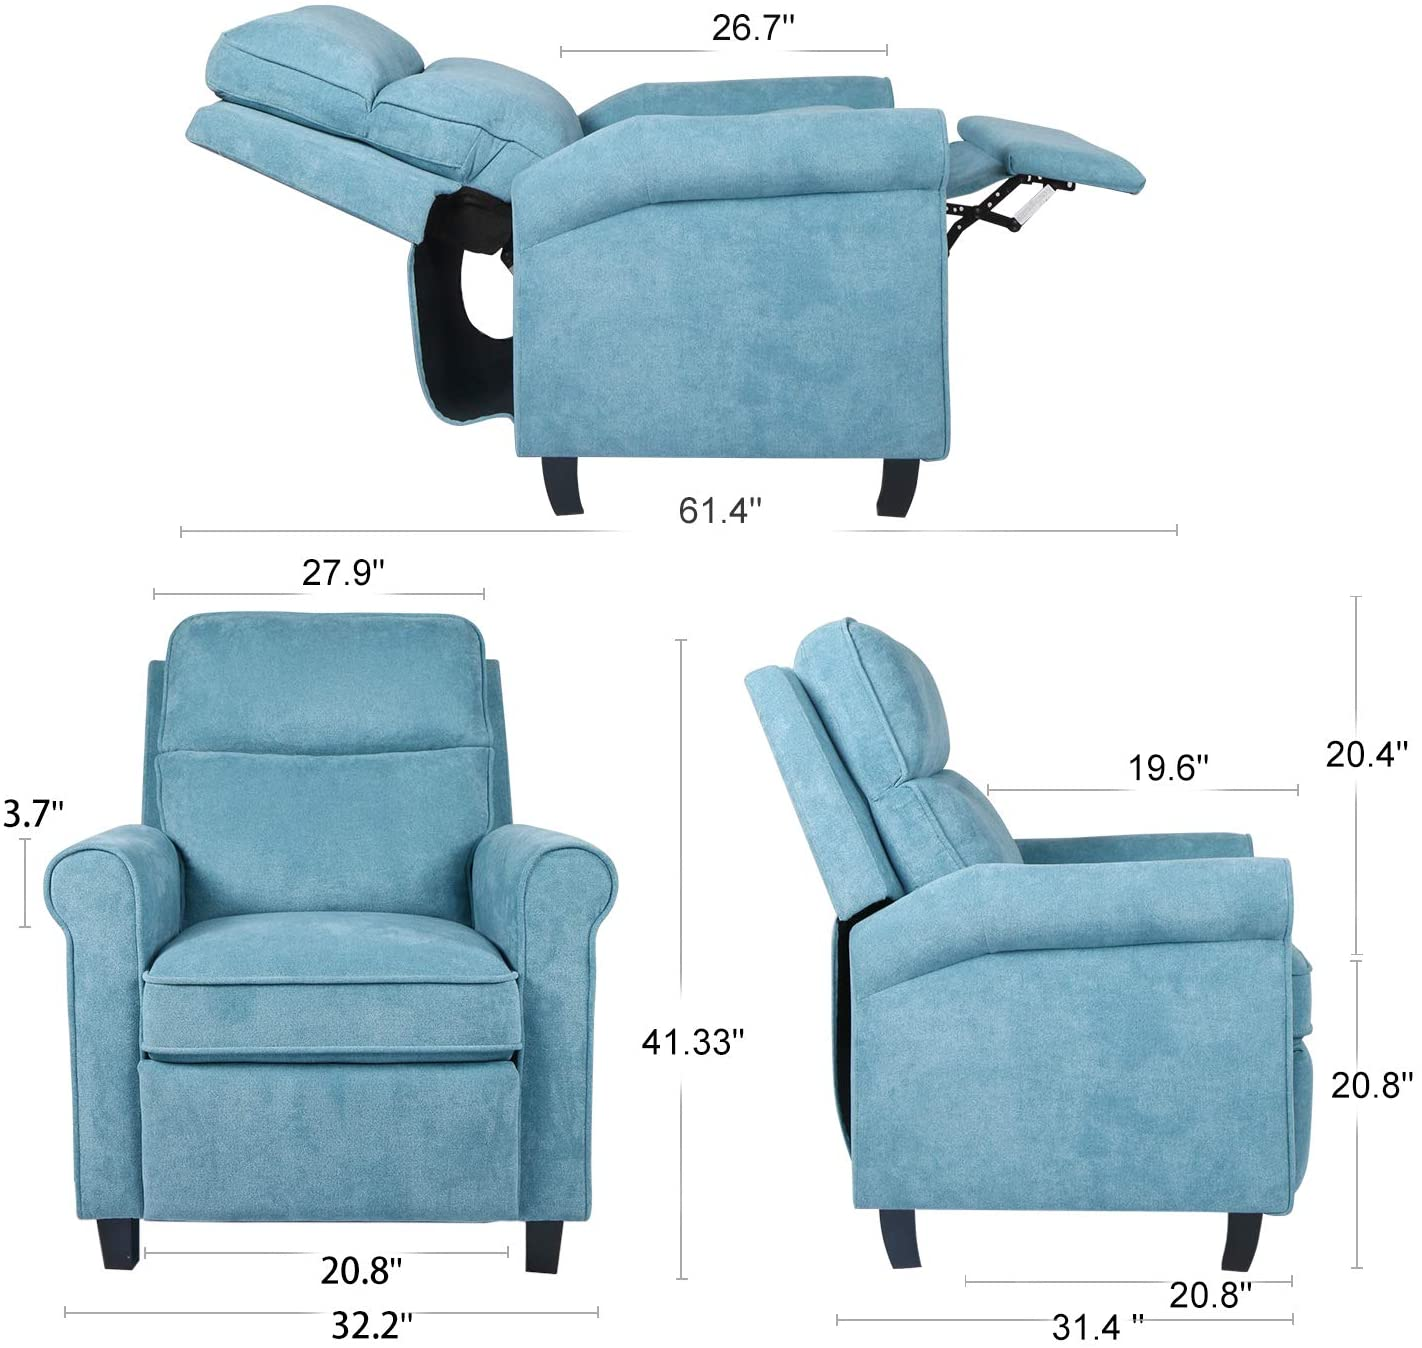 Smugdesk Fabric Recliner Chair Single Sofa Cushion Adjustable Home Theater Seating Living Room Lounge Blue